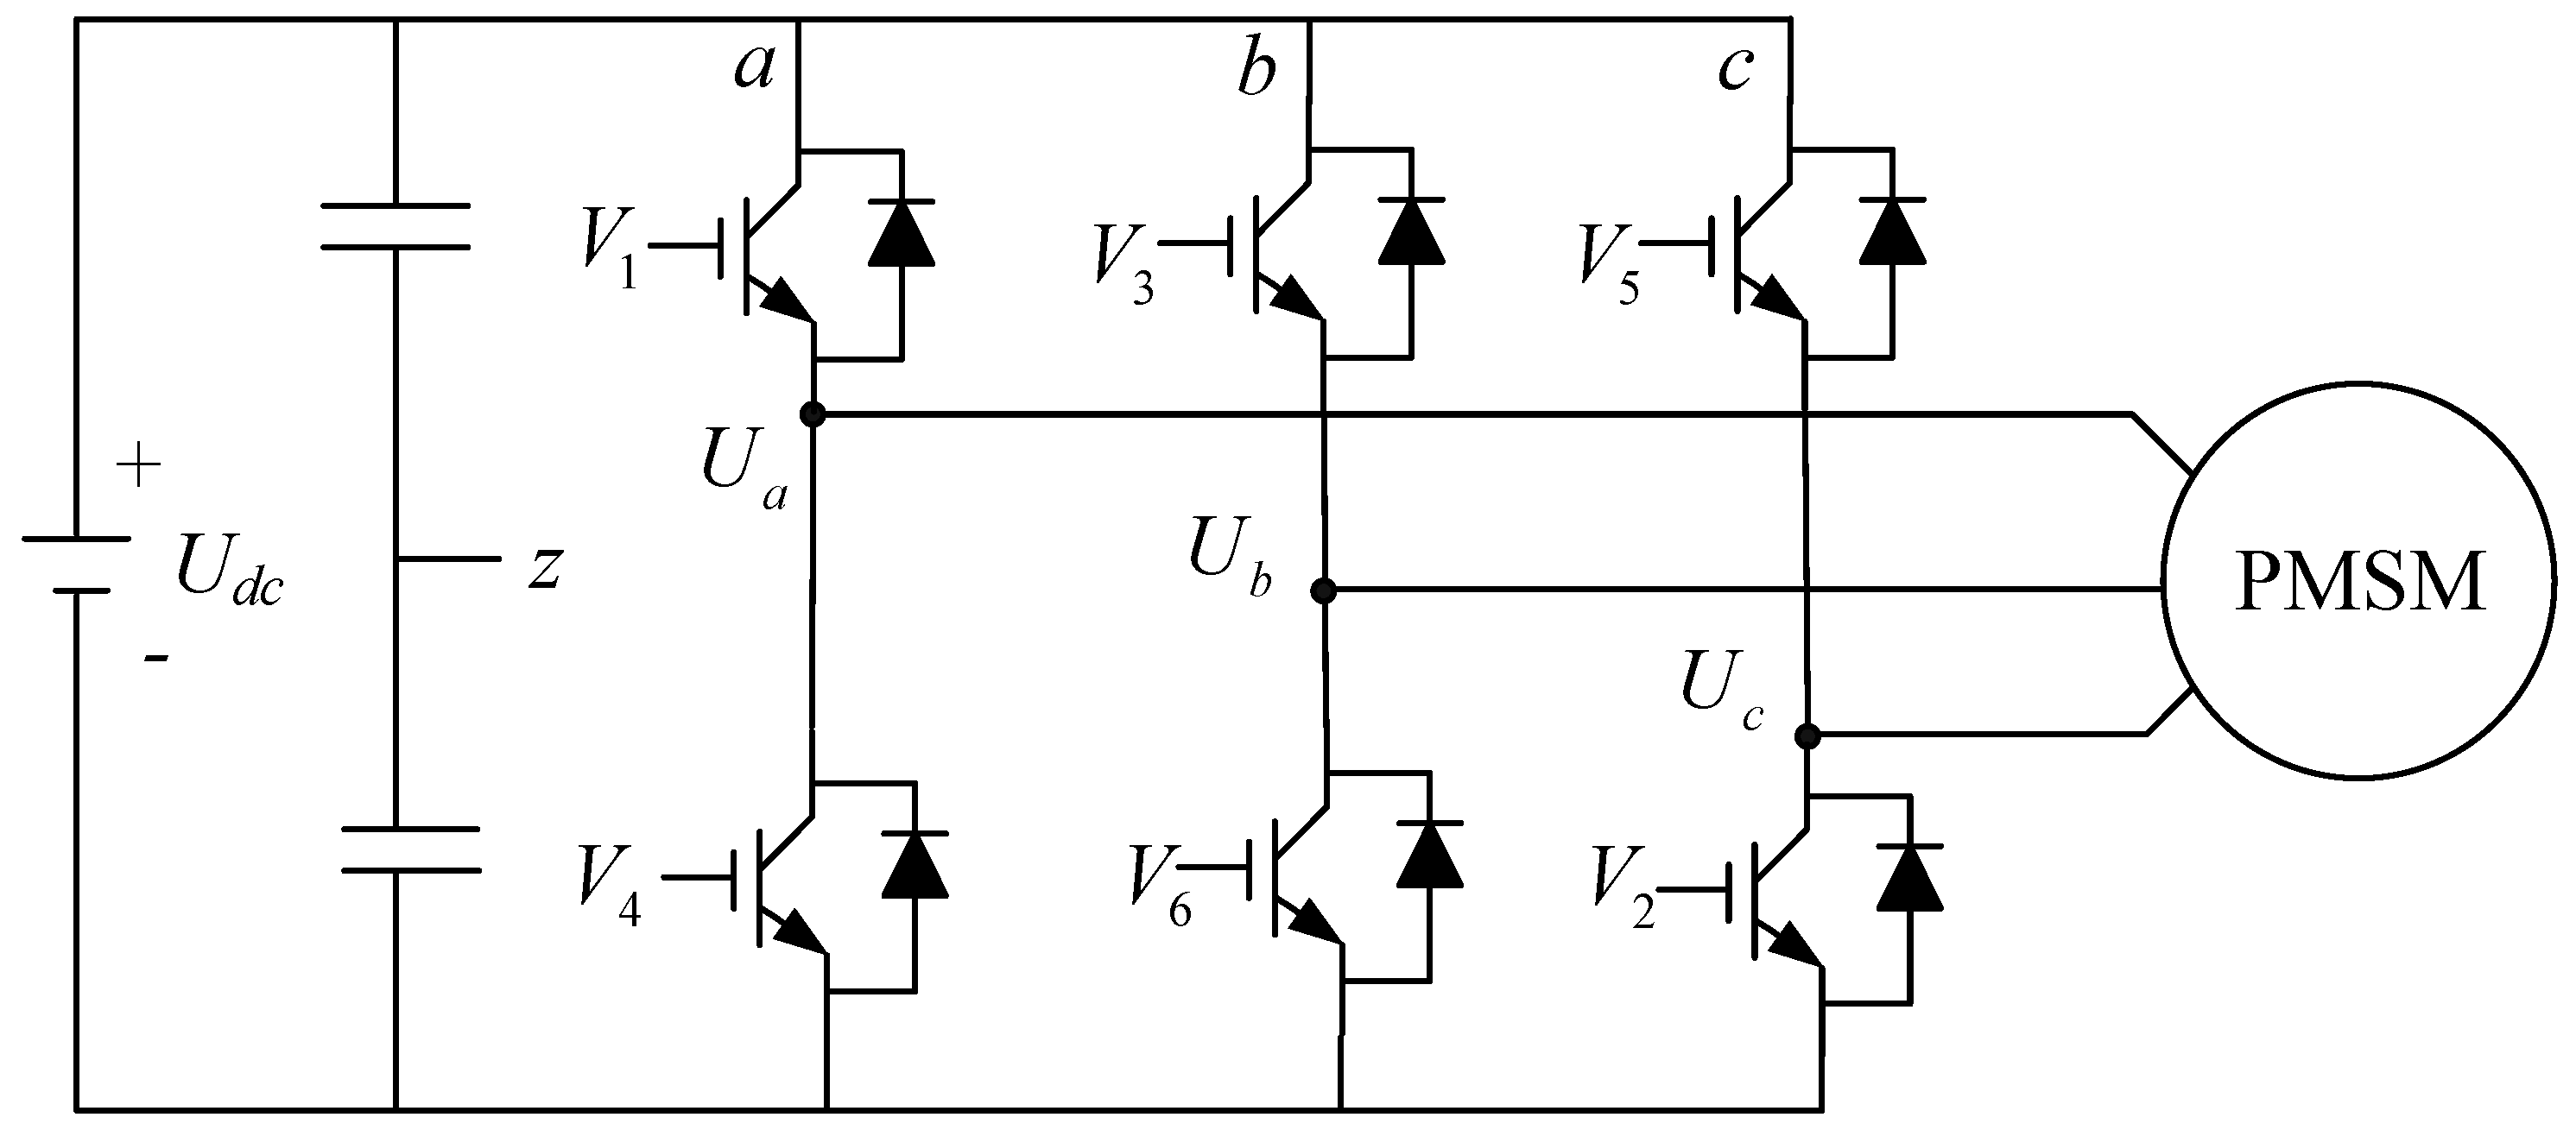 Energies | Free Full-Text | System Efficiency Improvement for ... on permanent magnet motor timing, permanent magnet motor repair, permanent magnet motor design diagrams, permanent magnet motor power diagram, permanent magnet motor applications, permanent magnet synchronous generator, pressure sensor wiring diagram, permanent magnet motor dimensions, permanent magnet shielding, permanent magnet motor schematic, permanent magnet stepper motor, permanent magnet electric motors diagram, electric motors wiring diagram, dayton motors wiring diagram,